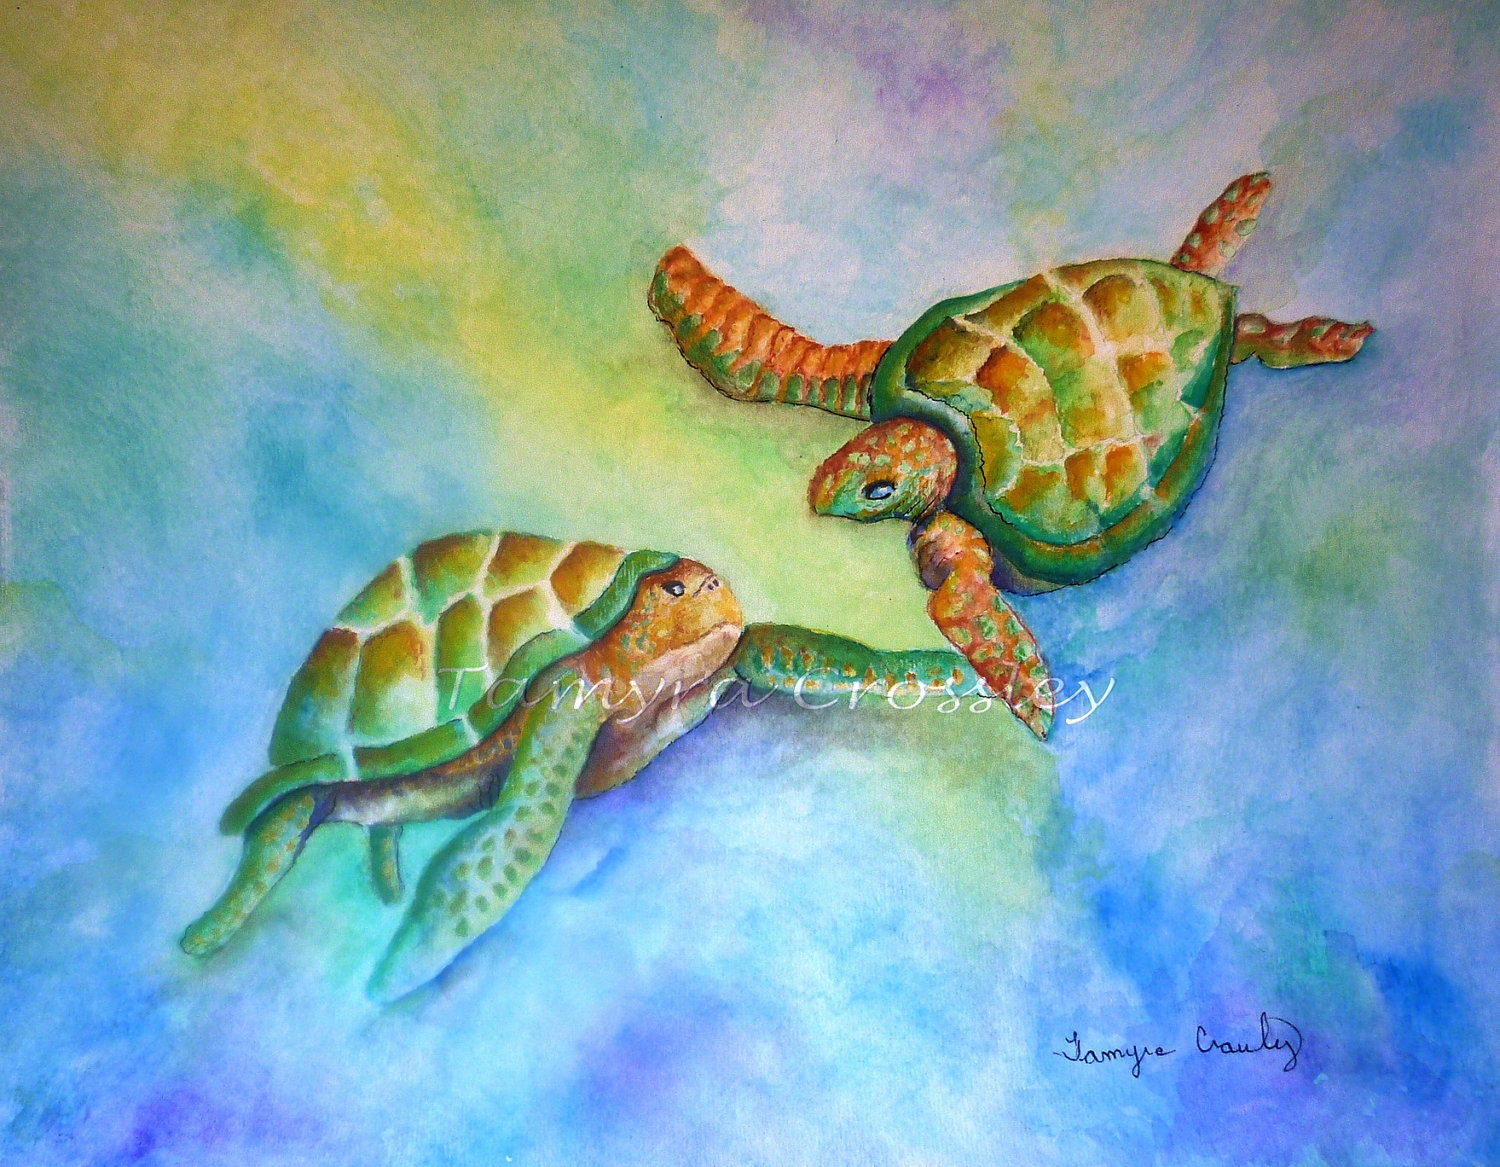 Sea Turtle Courtship.  8x10 Fine Art Print signed by artist Tamyra Crossley. - studioquest